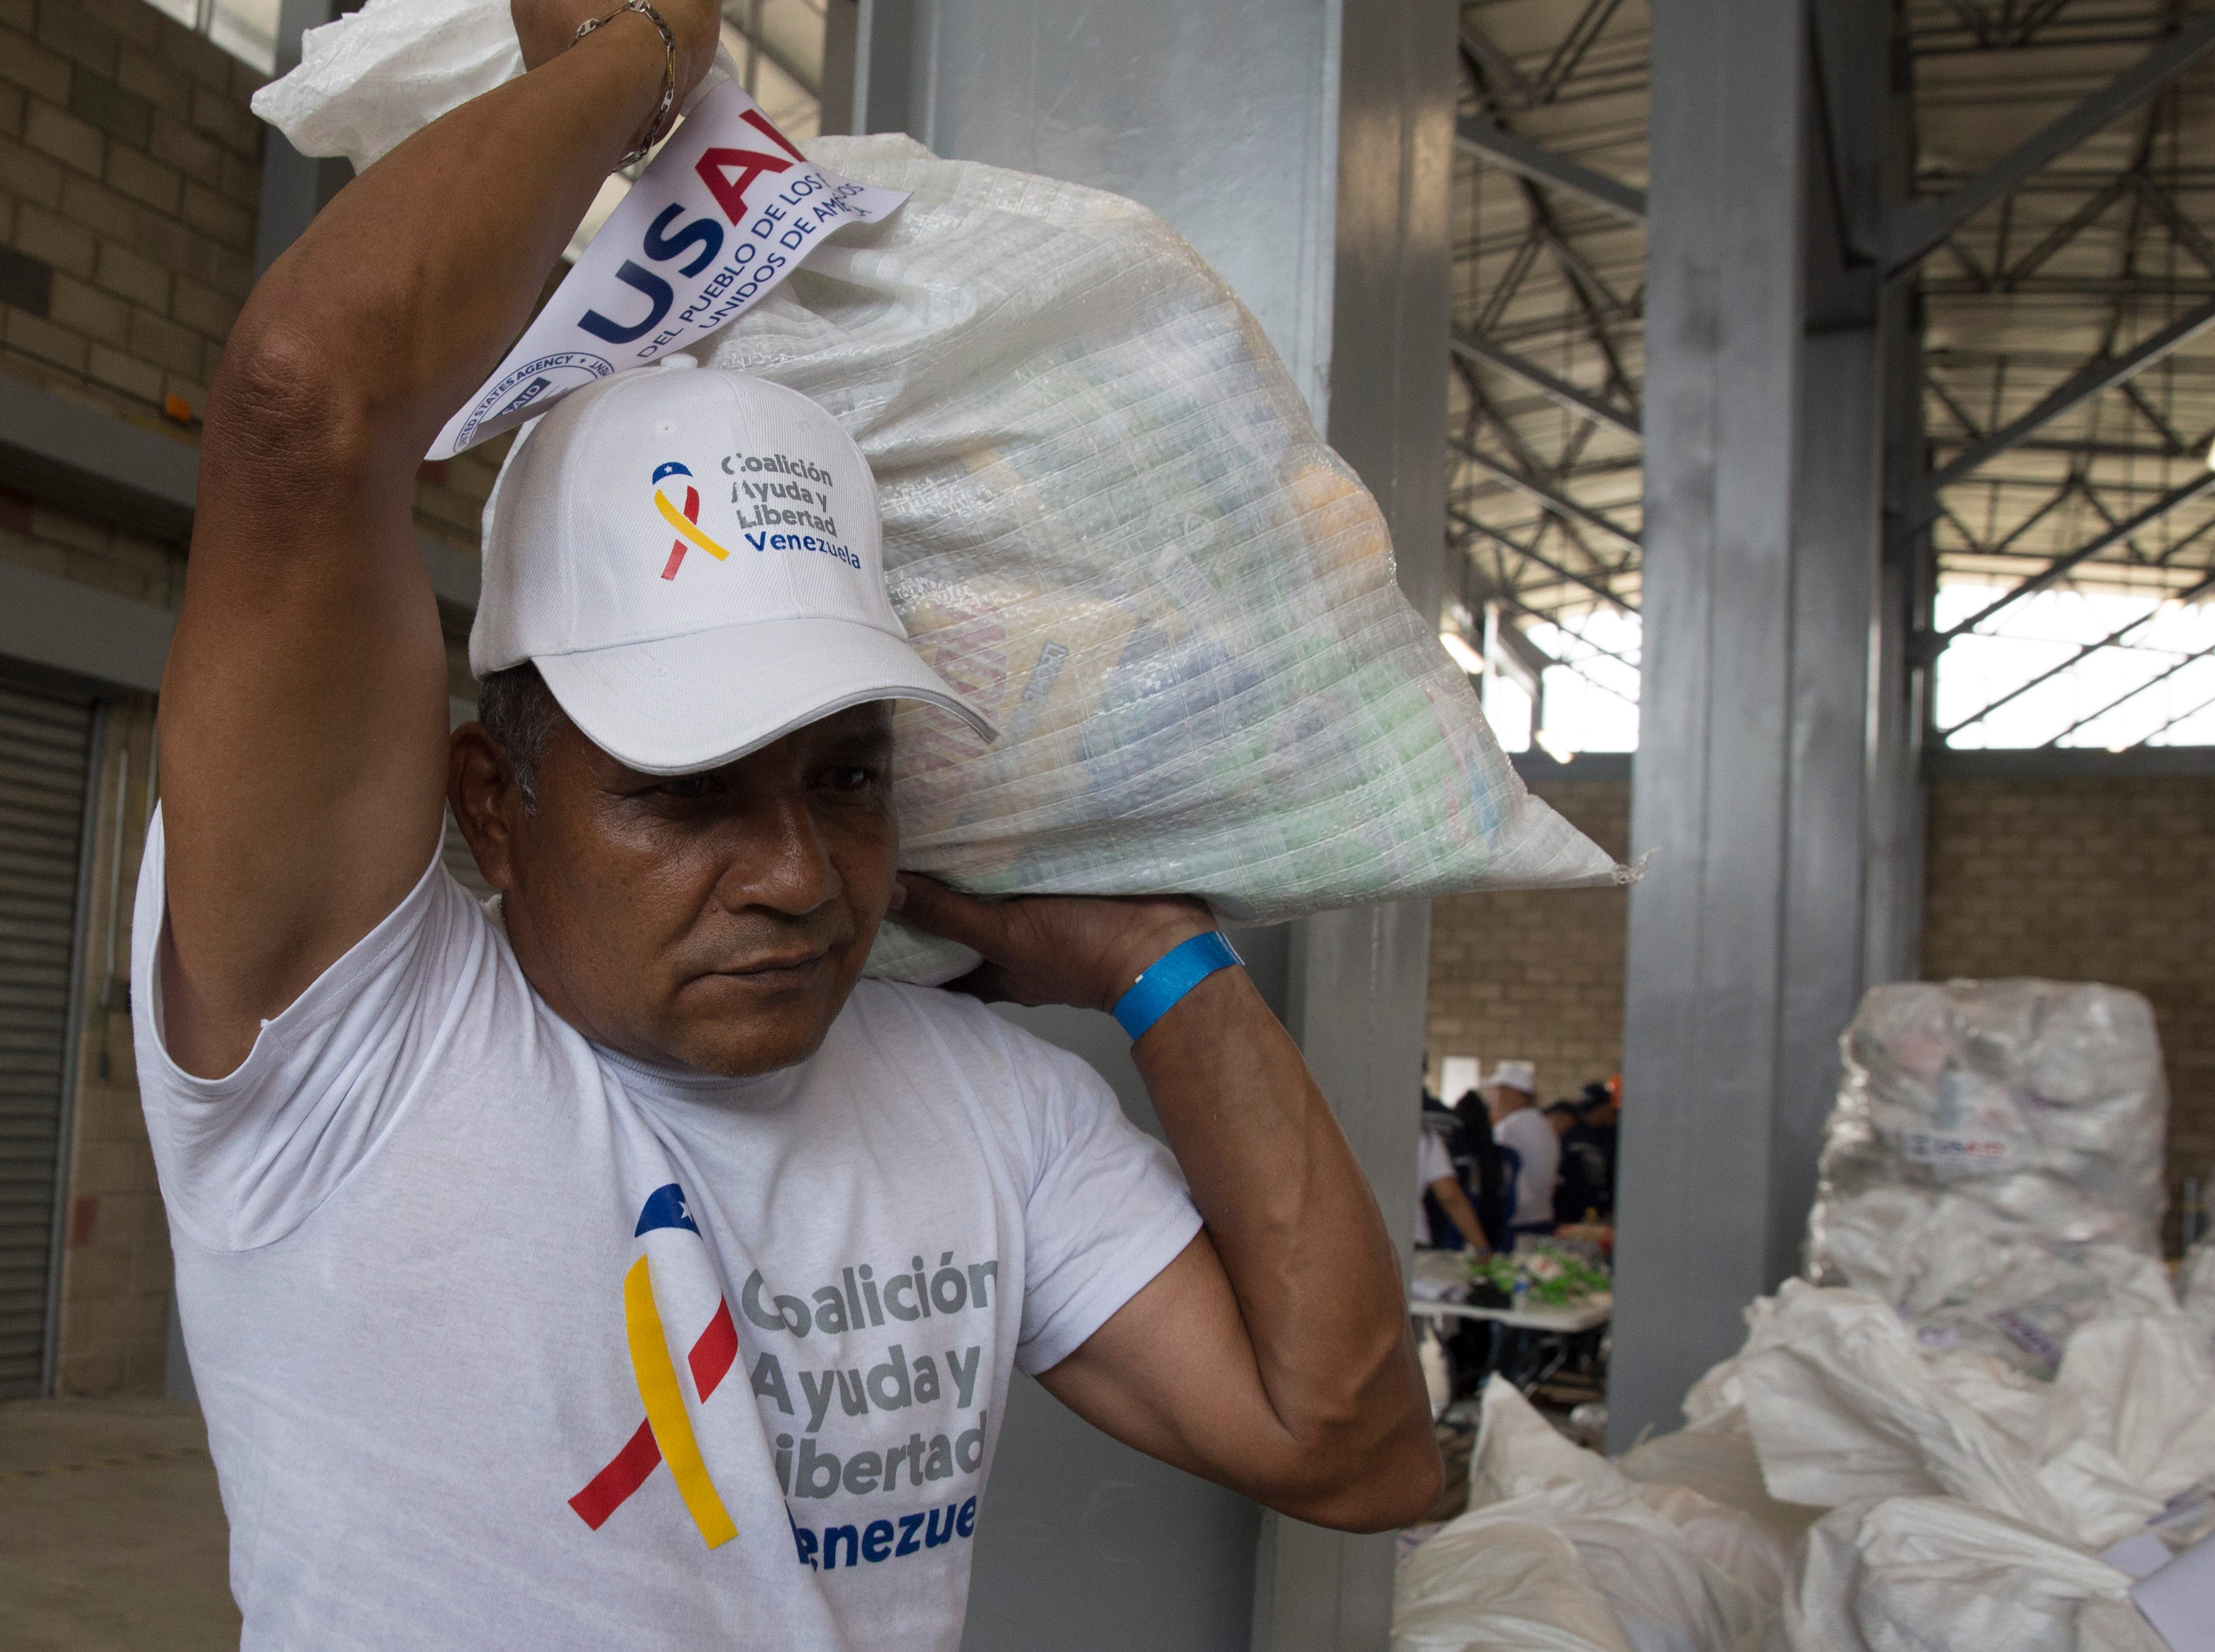 Men and women pack white sacks full of food and medicine from the United States for the Venezuelan people on Colombia-Venezuela border on Feb. 8, 2019.